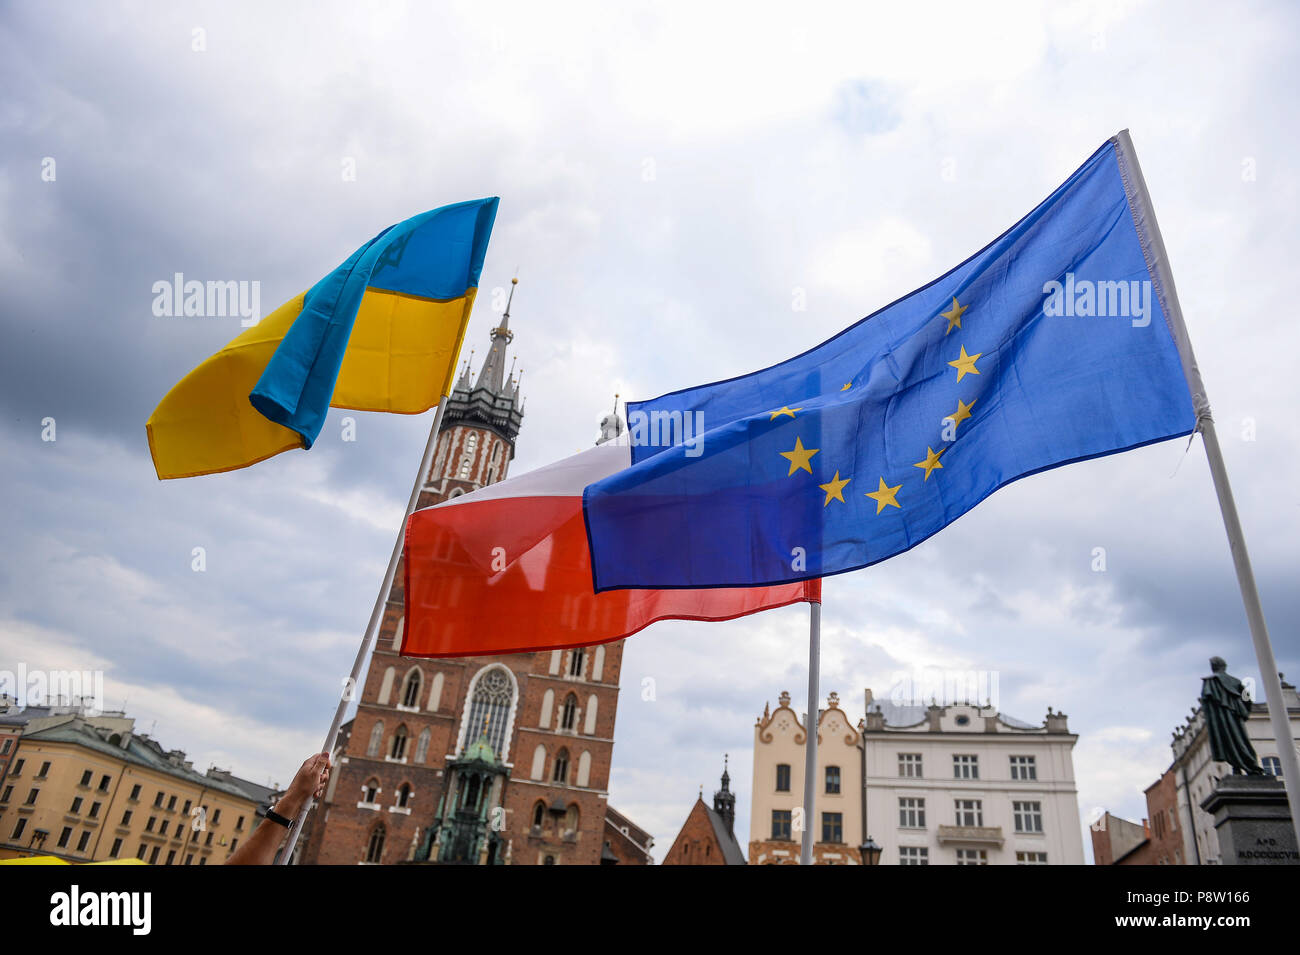 Ukrainian, Polish and European Union flags are seen during the protest. Protest demanding the release of the Ukrainian filmmaker and writer, Oleg Sentsov at the Main Square in Krakow who was sentenced to 20 years for conspiracy to commit terror acts. - Stock Image